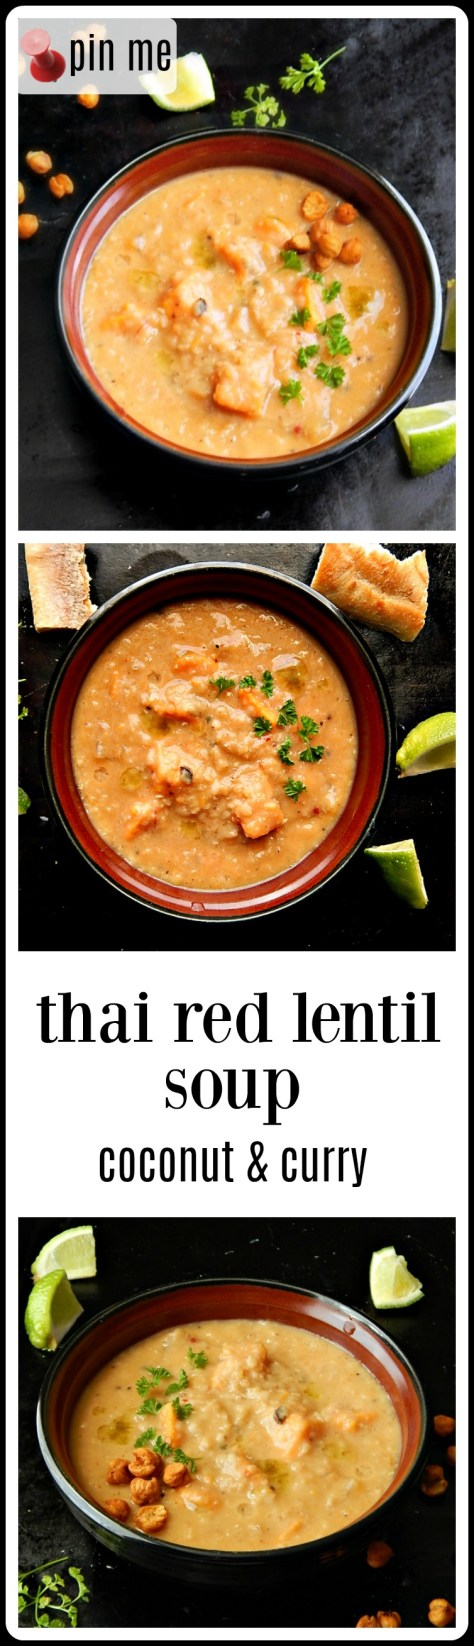 Thai Red Lentil Soup - coconut, curry & lime! Cooks fast and may be served chunky or as a puree